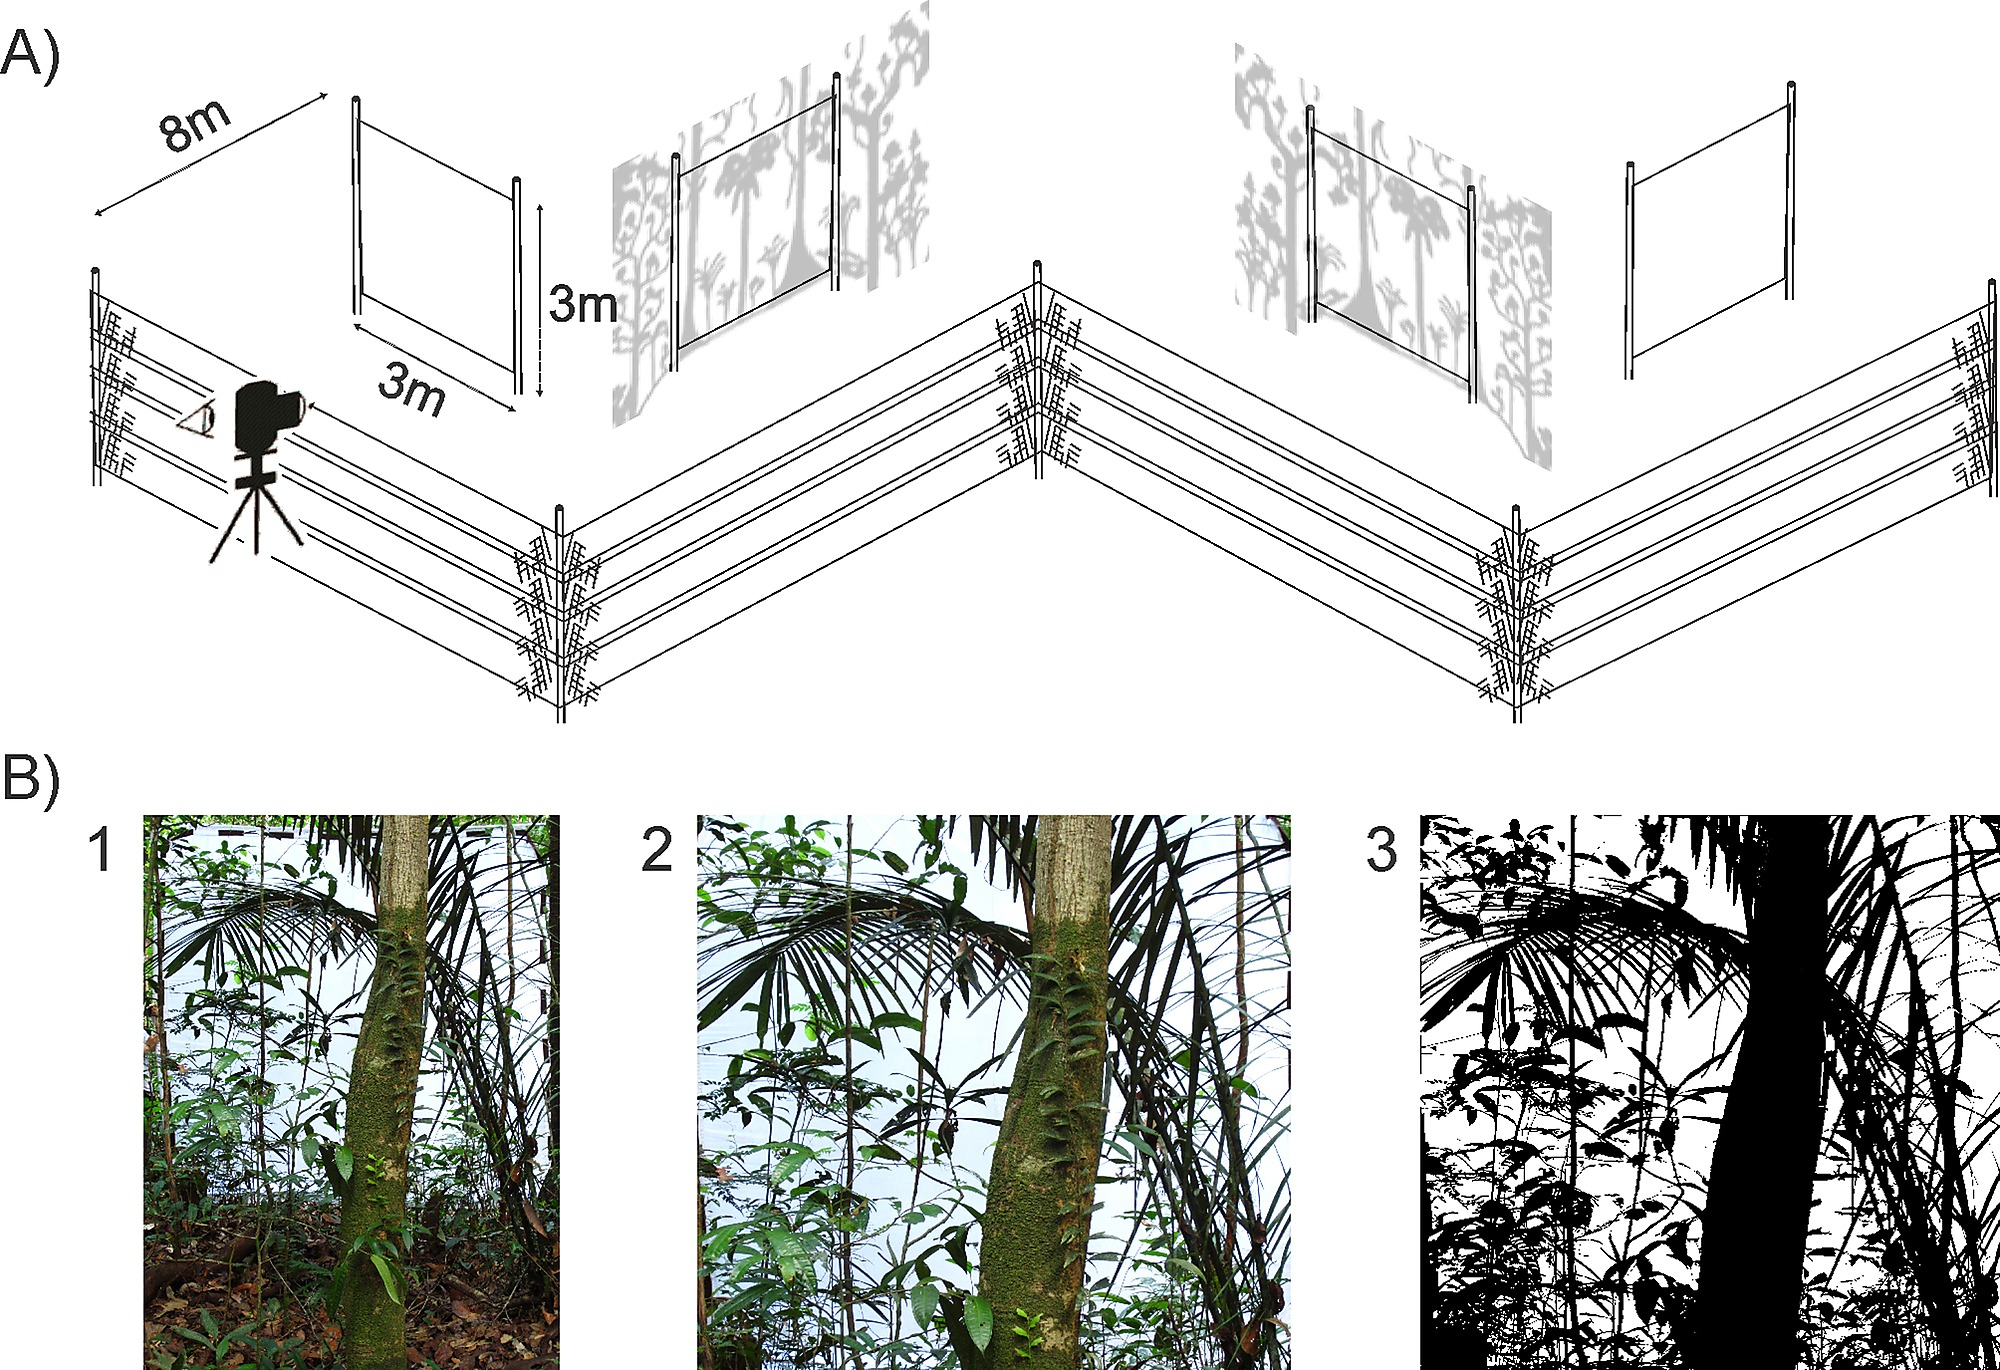 Ground Vegetation Clutter Affects Phyllostomid Bat Assemblage Detector Schematics To Make A Schematic Illustration Of Digital Photographs Used Quantify The Understory In Each Sample Plot